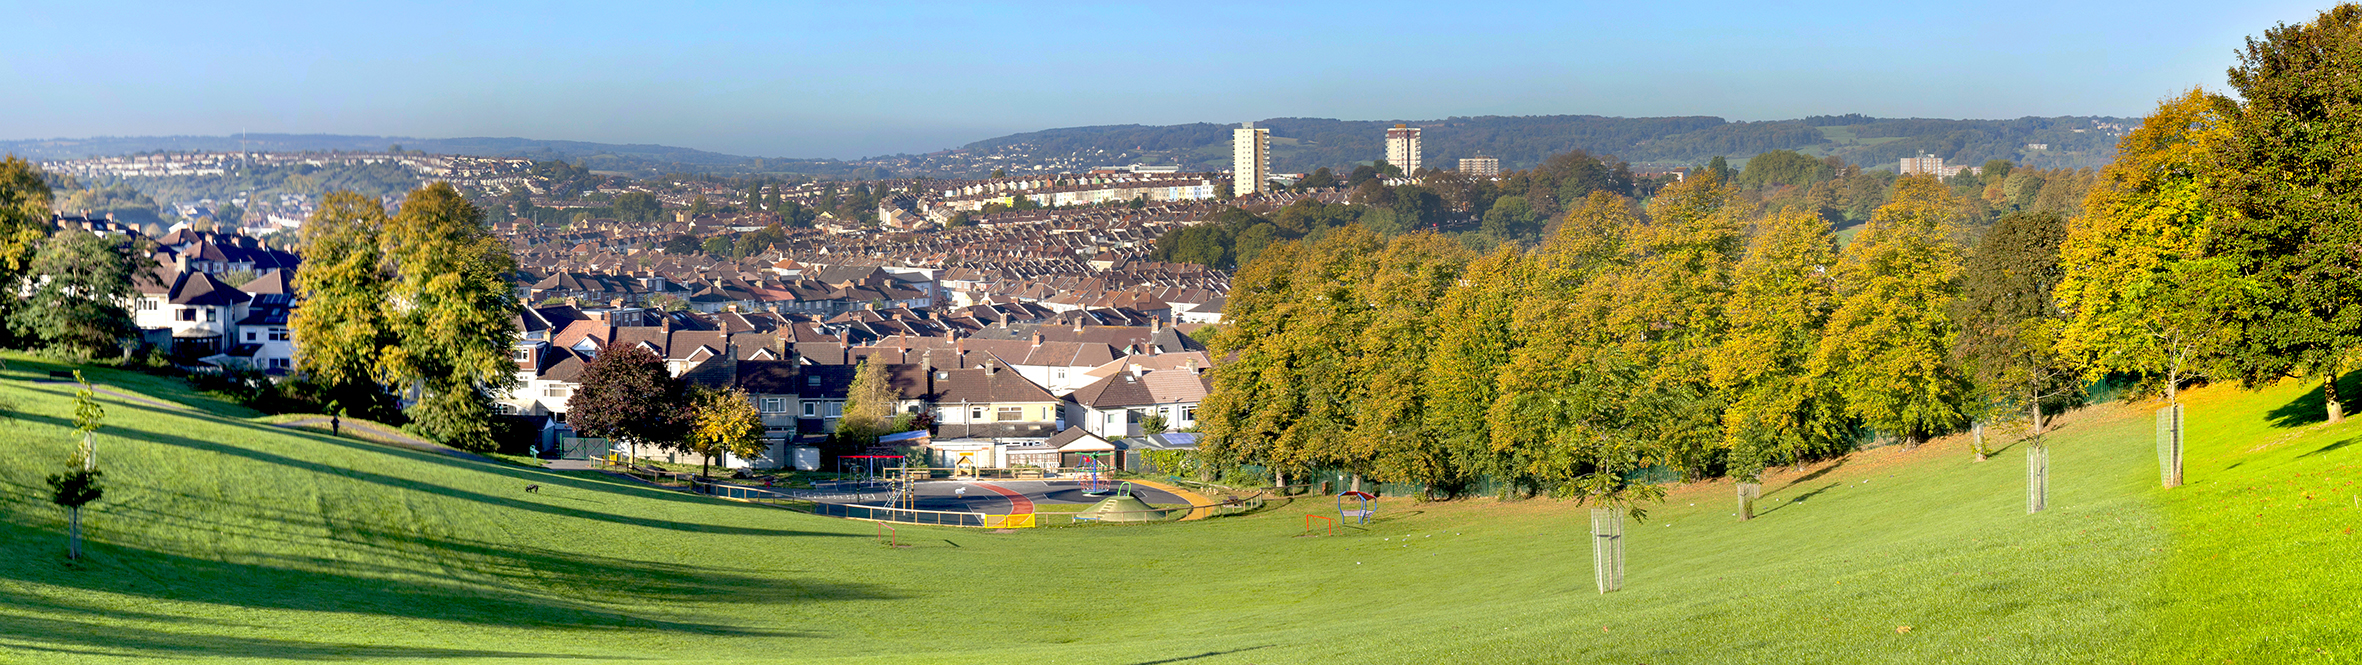 View of park and Windmill Hill skyline